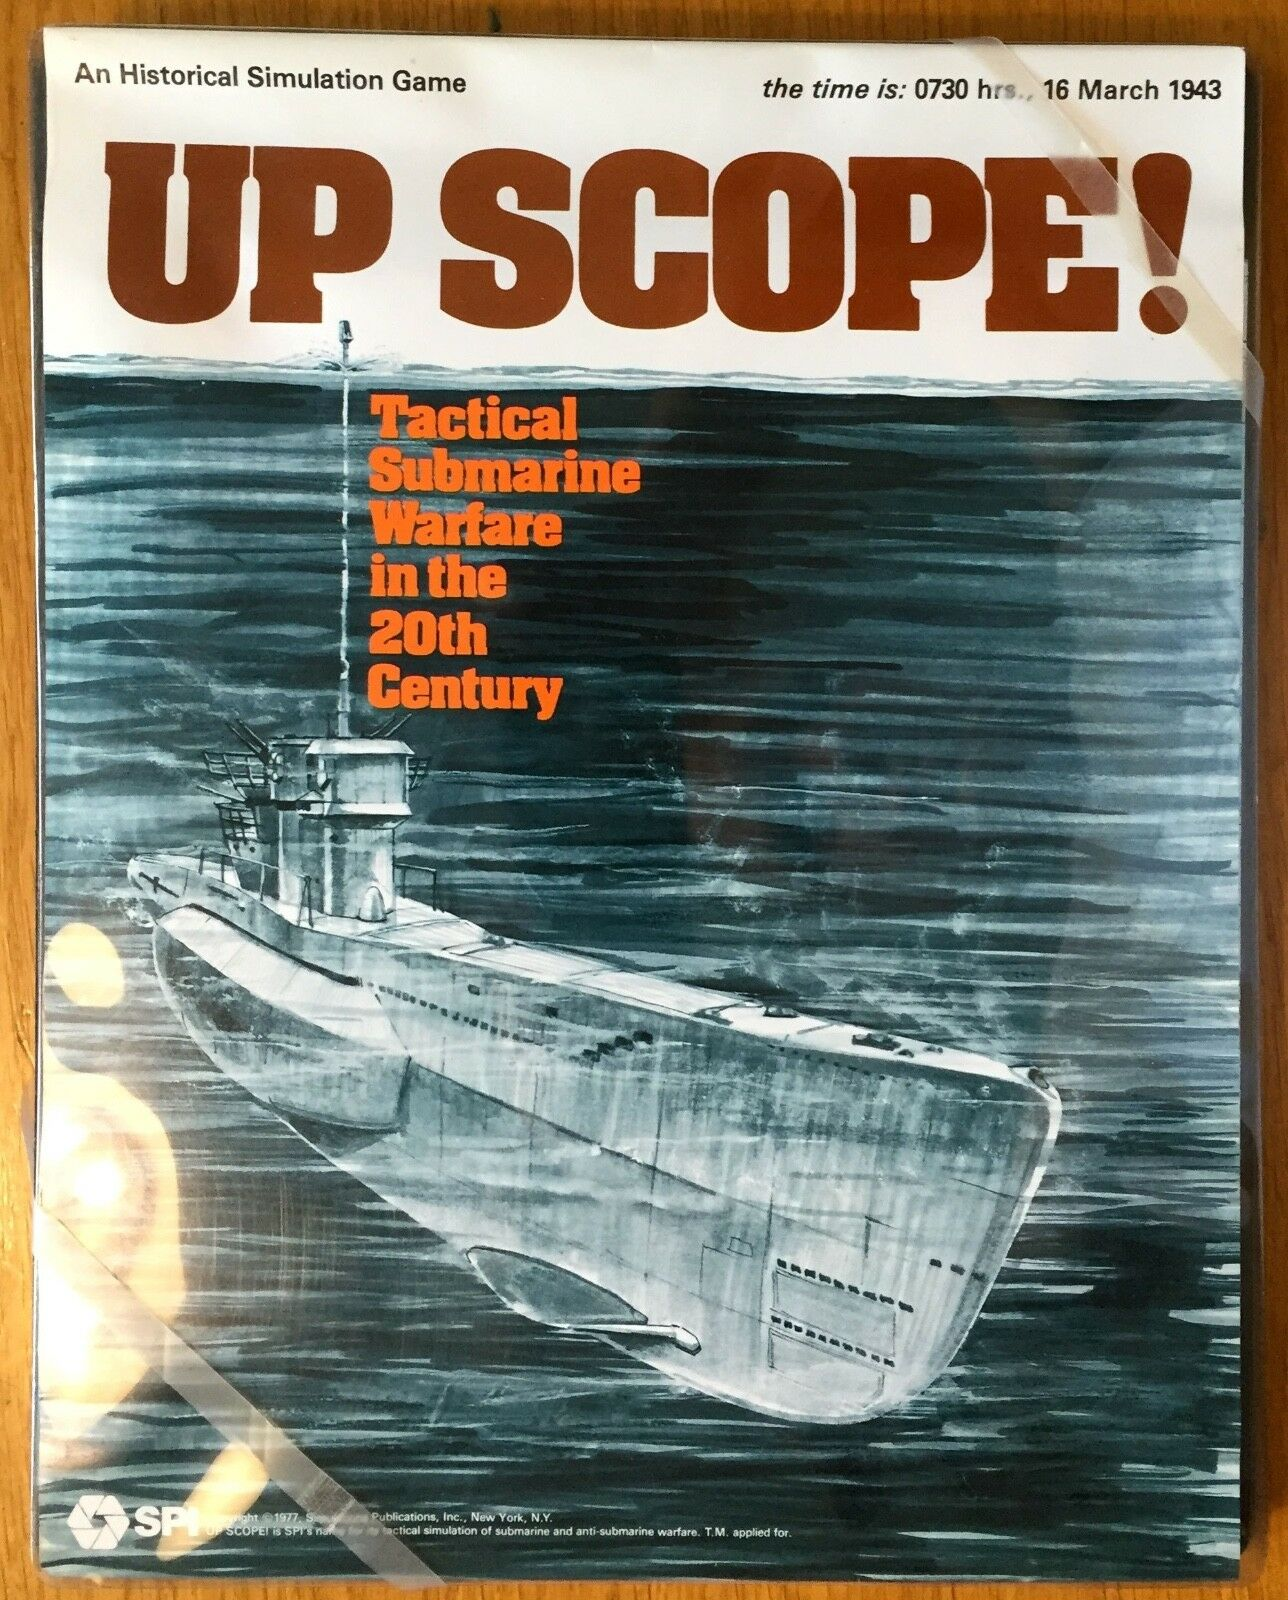 UP SCOPE - SPI 1977 - COME NUOVO - UNPUNCHED